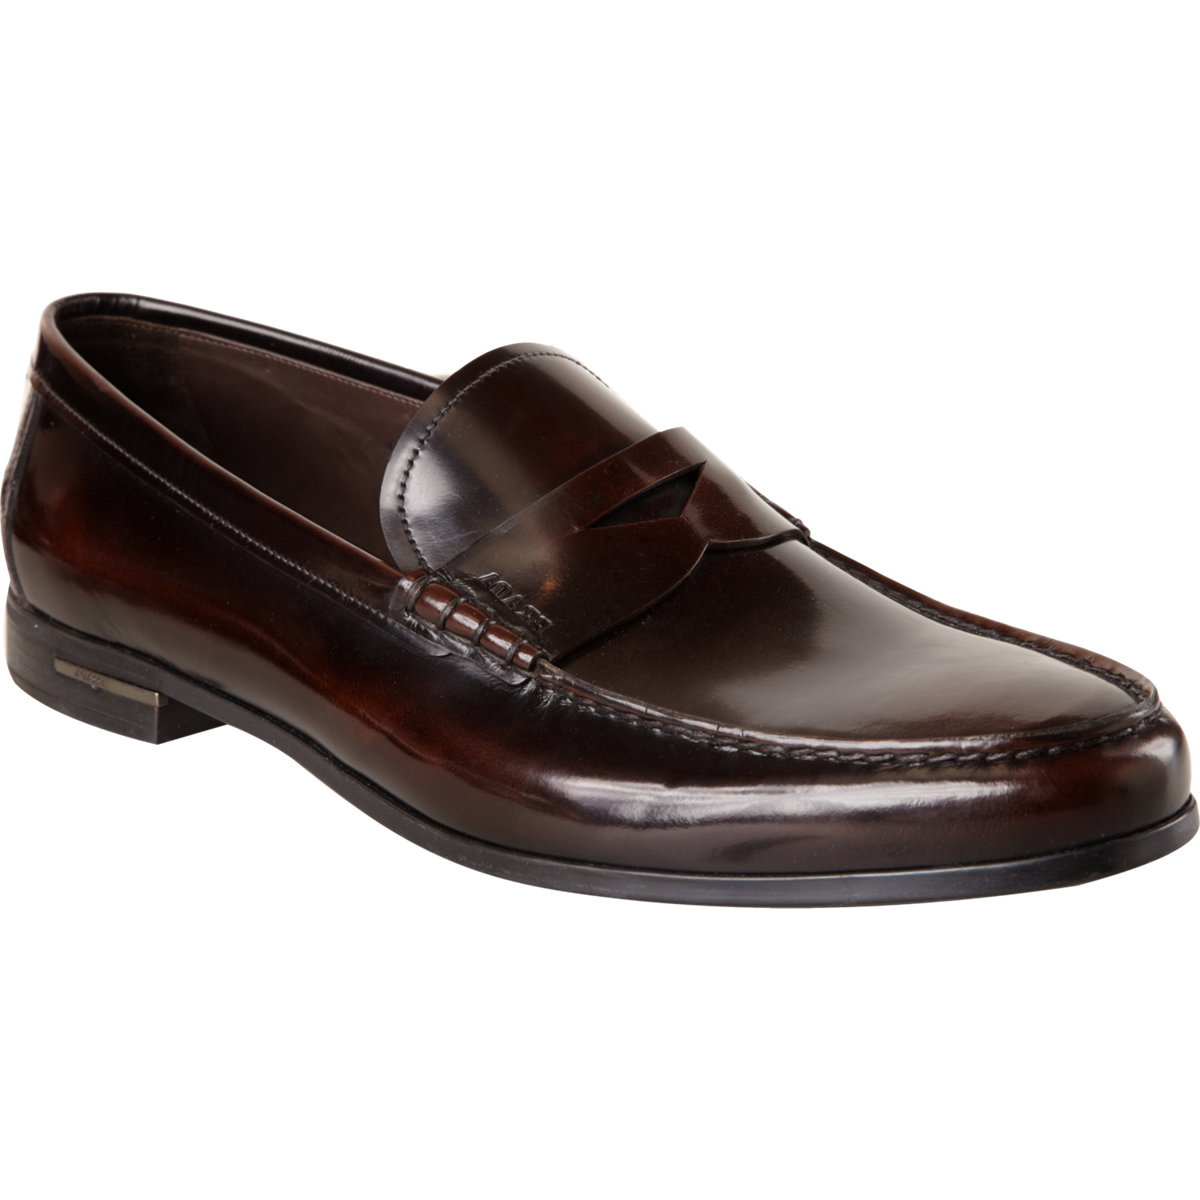 To Boot New York 'Dupont' Brown Leather Penny Loafers •To Boot New York 'Dupont' penny loafers •Leather upper •Penny detail at front •Leather lining •Padded footbed •Rubber sole •Made in Italy Up for sale for just a limited time are the 'Dupont' penny loafers by To Boot New York.